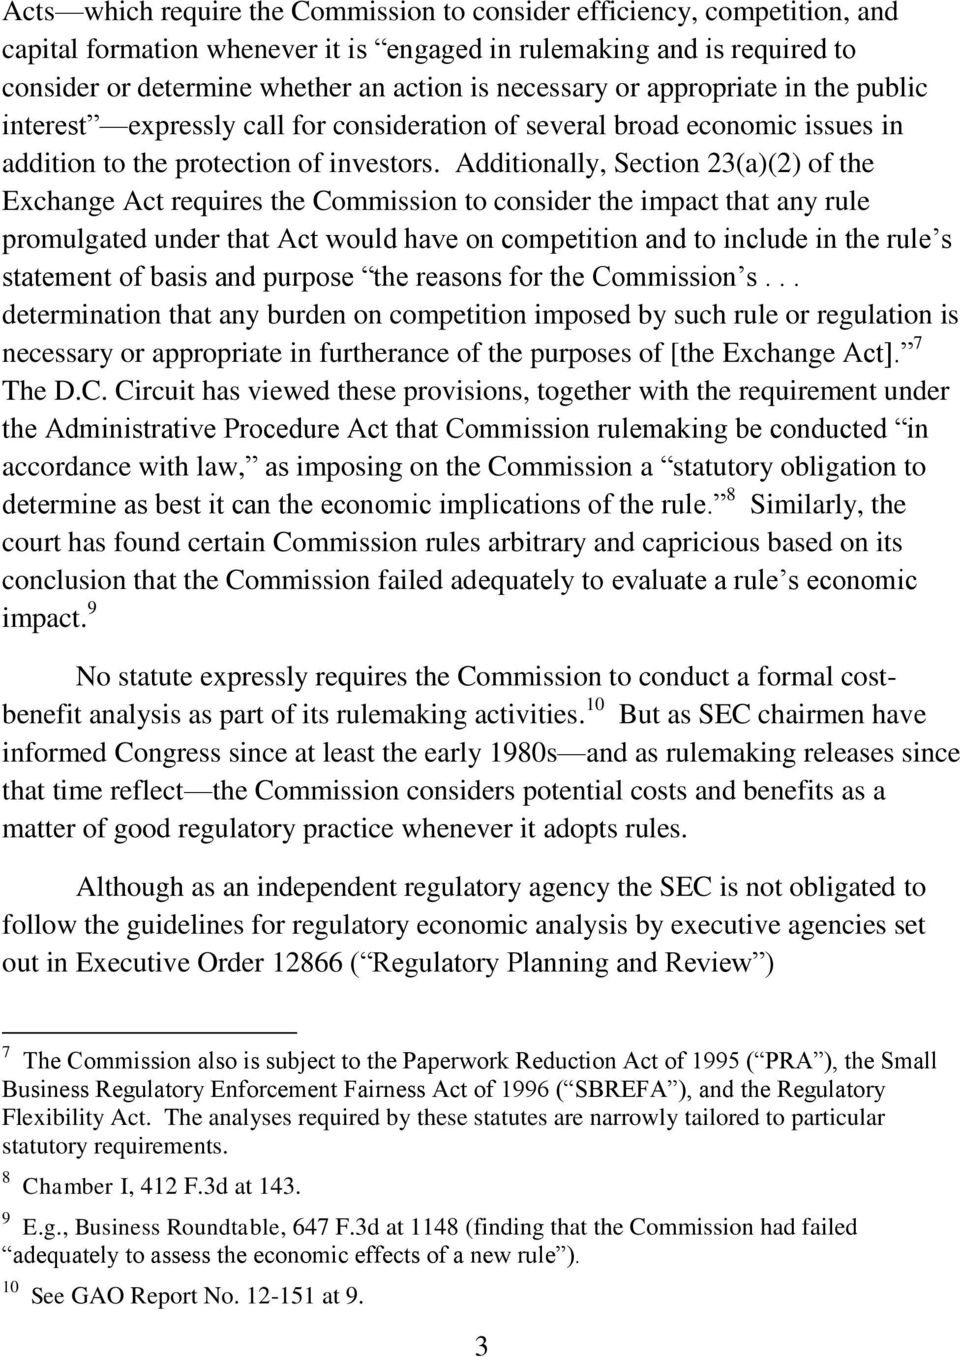 Additionally, Section 23(a)(2) of the Exchange Act requires the Commission to consider the impact that any rule promulgated under that Act would have on competition and to include in the rule s